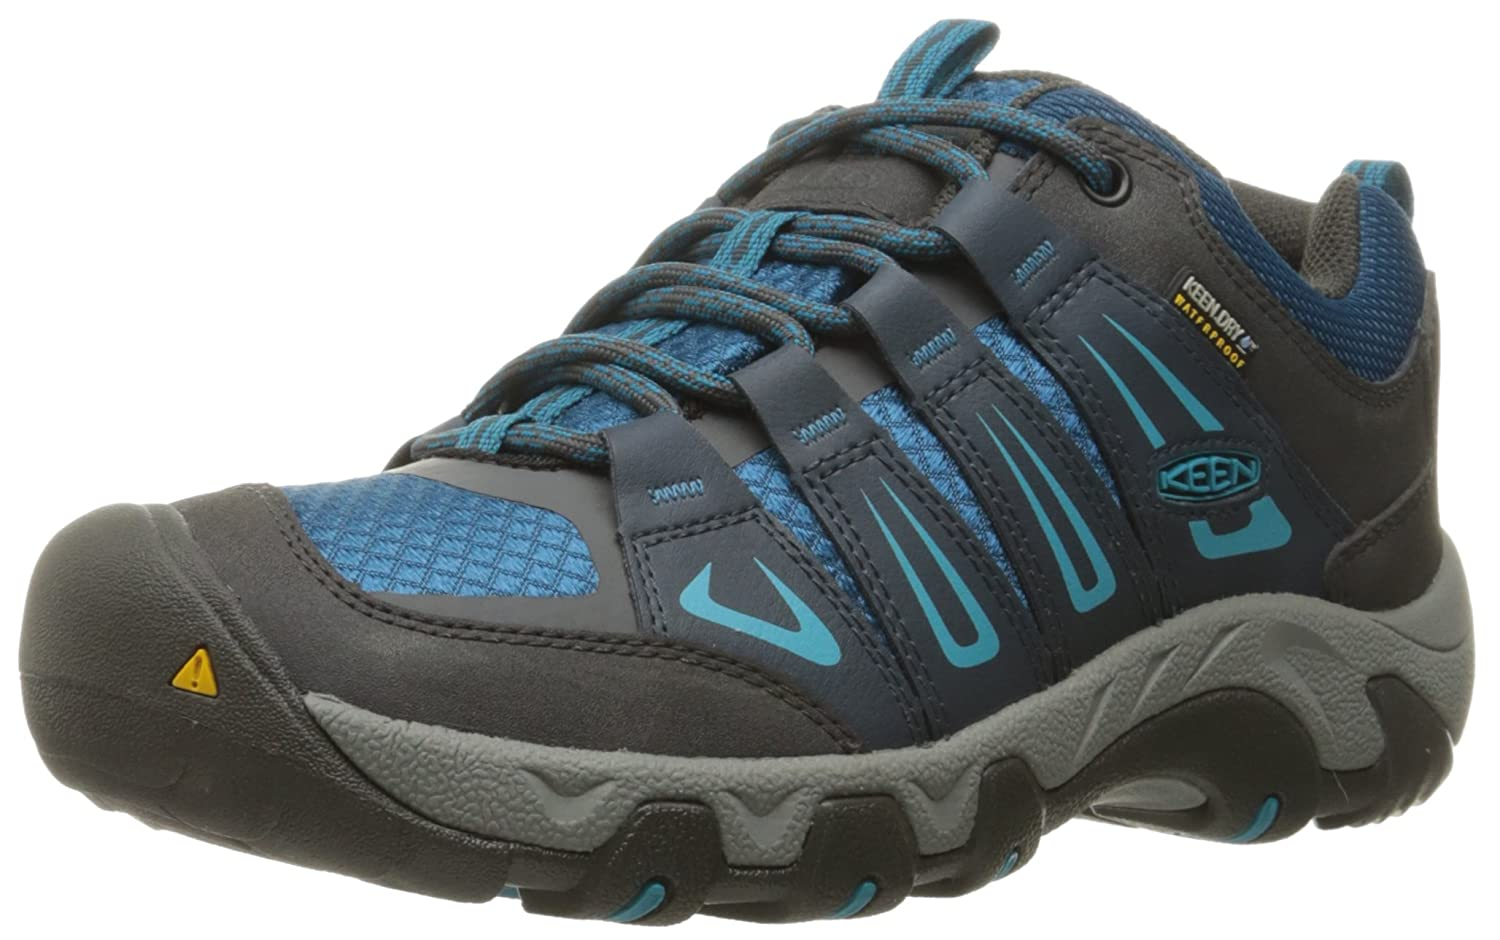 Raven Seaport KEEN Women's Oakridge WP Running shoes